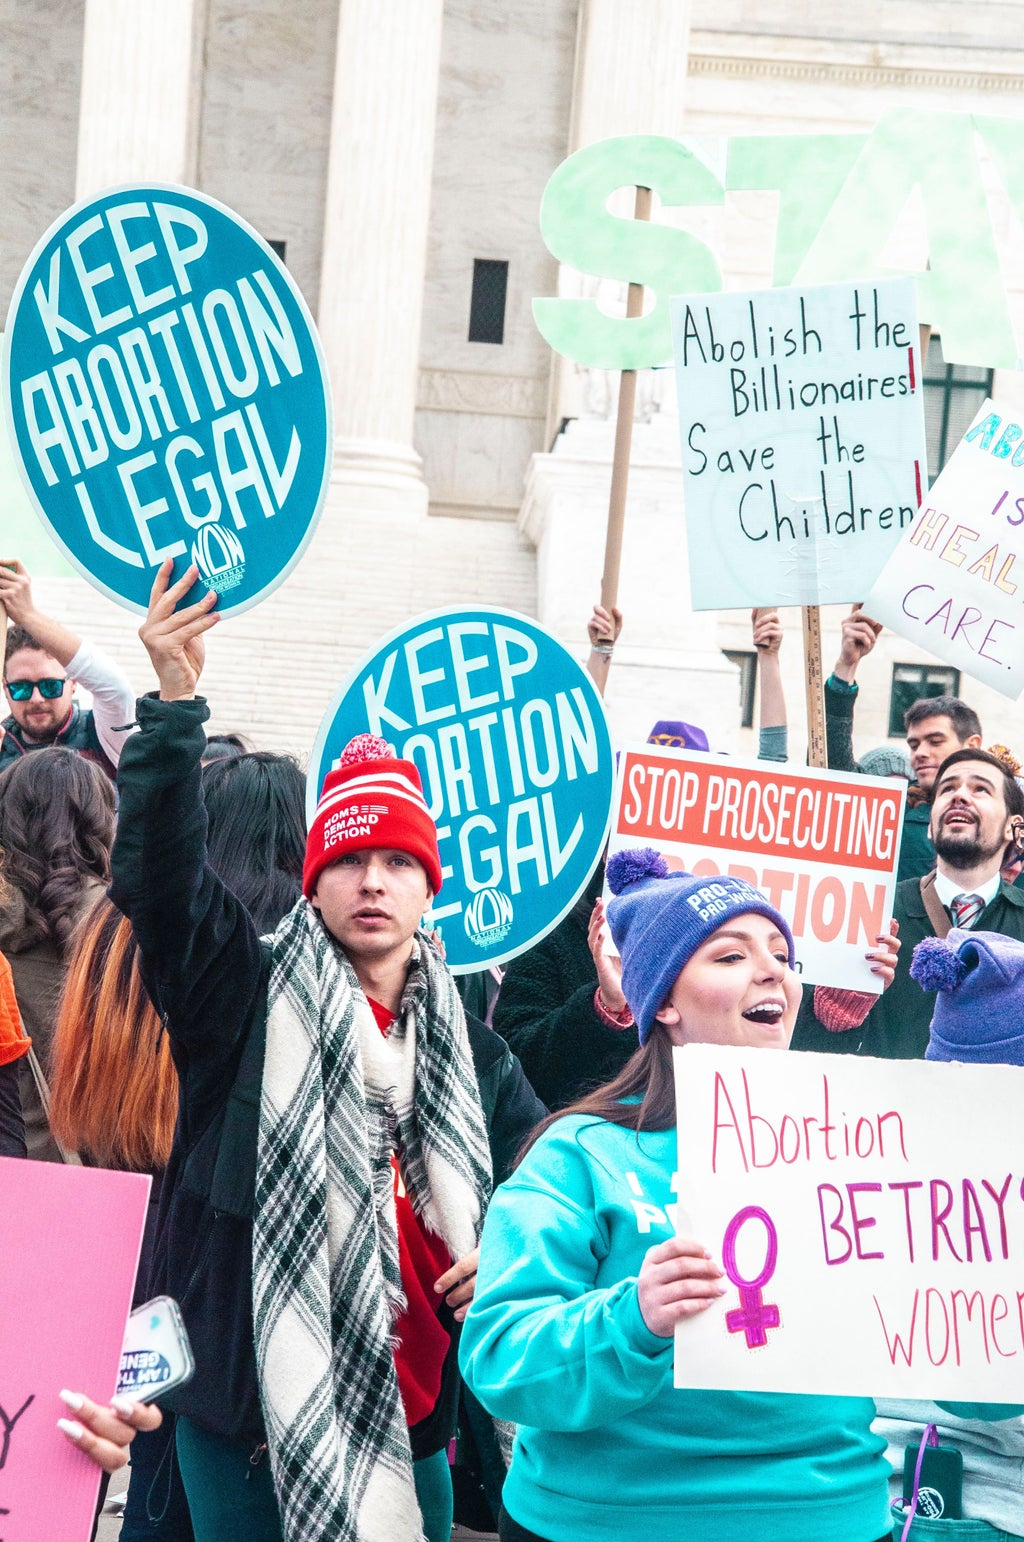 People holding signs at a pro-choice rally in Washington D.C